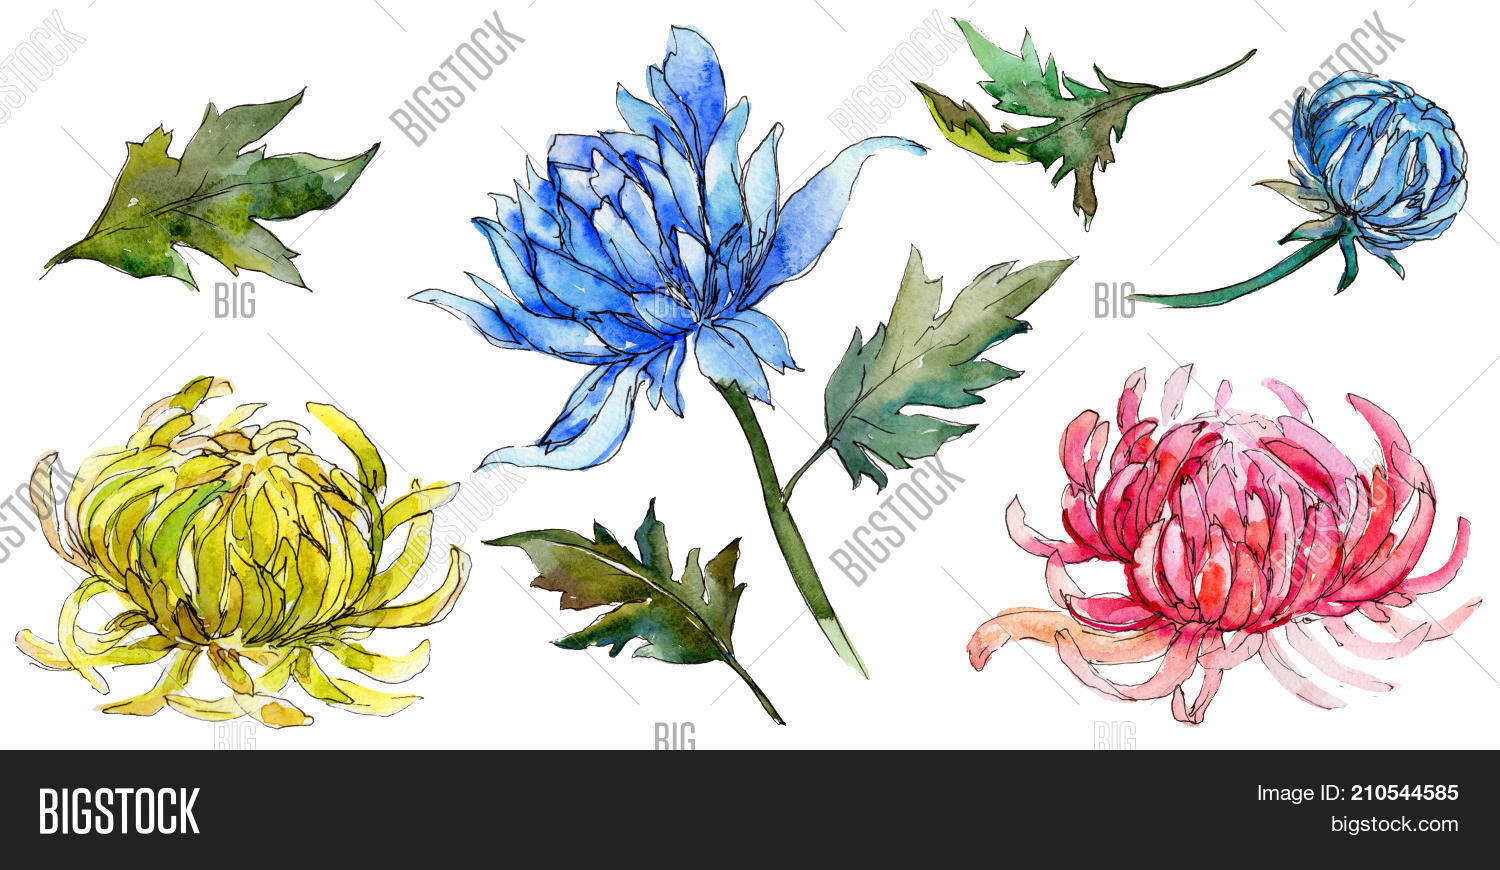 Wildflower image photo free trial bigstock wildflower chrysanthemum flower in a watercolor style isolated full name of the plant golden izmirmasajfo